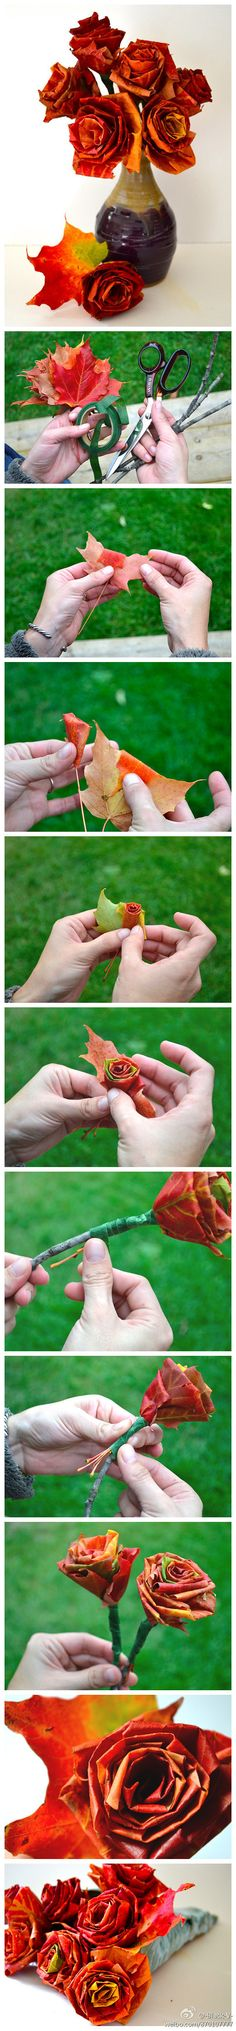 Autumn Leaf Roses this is so cute